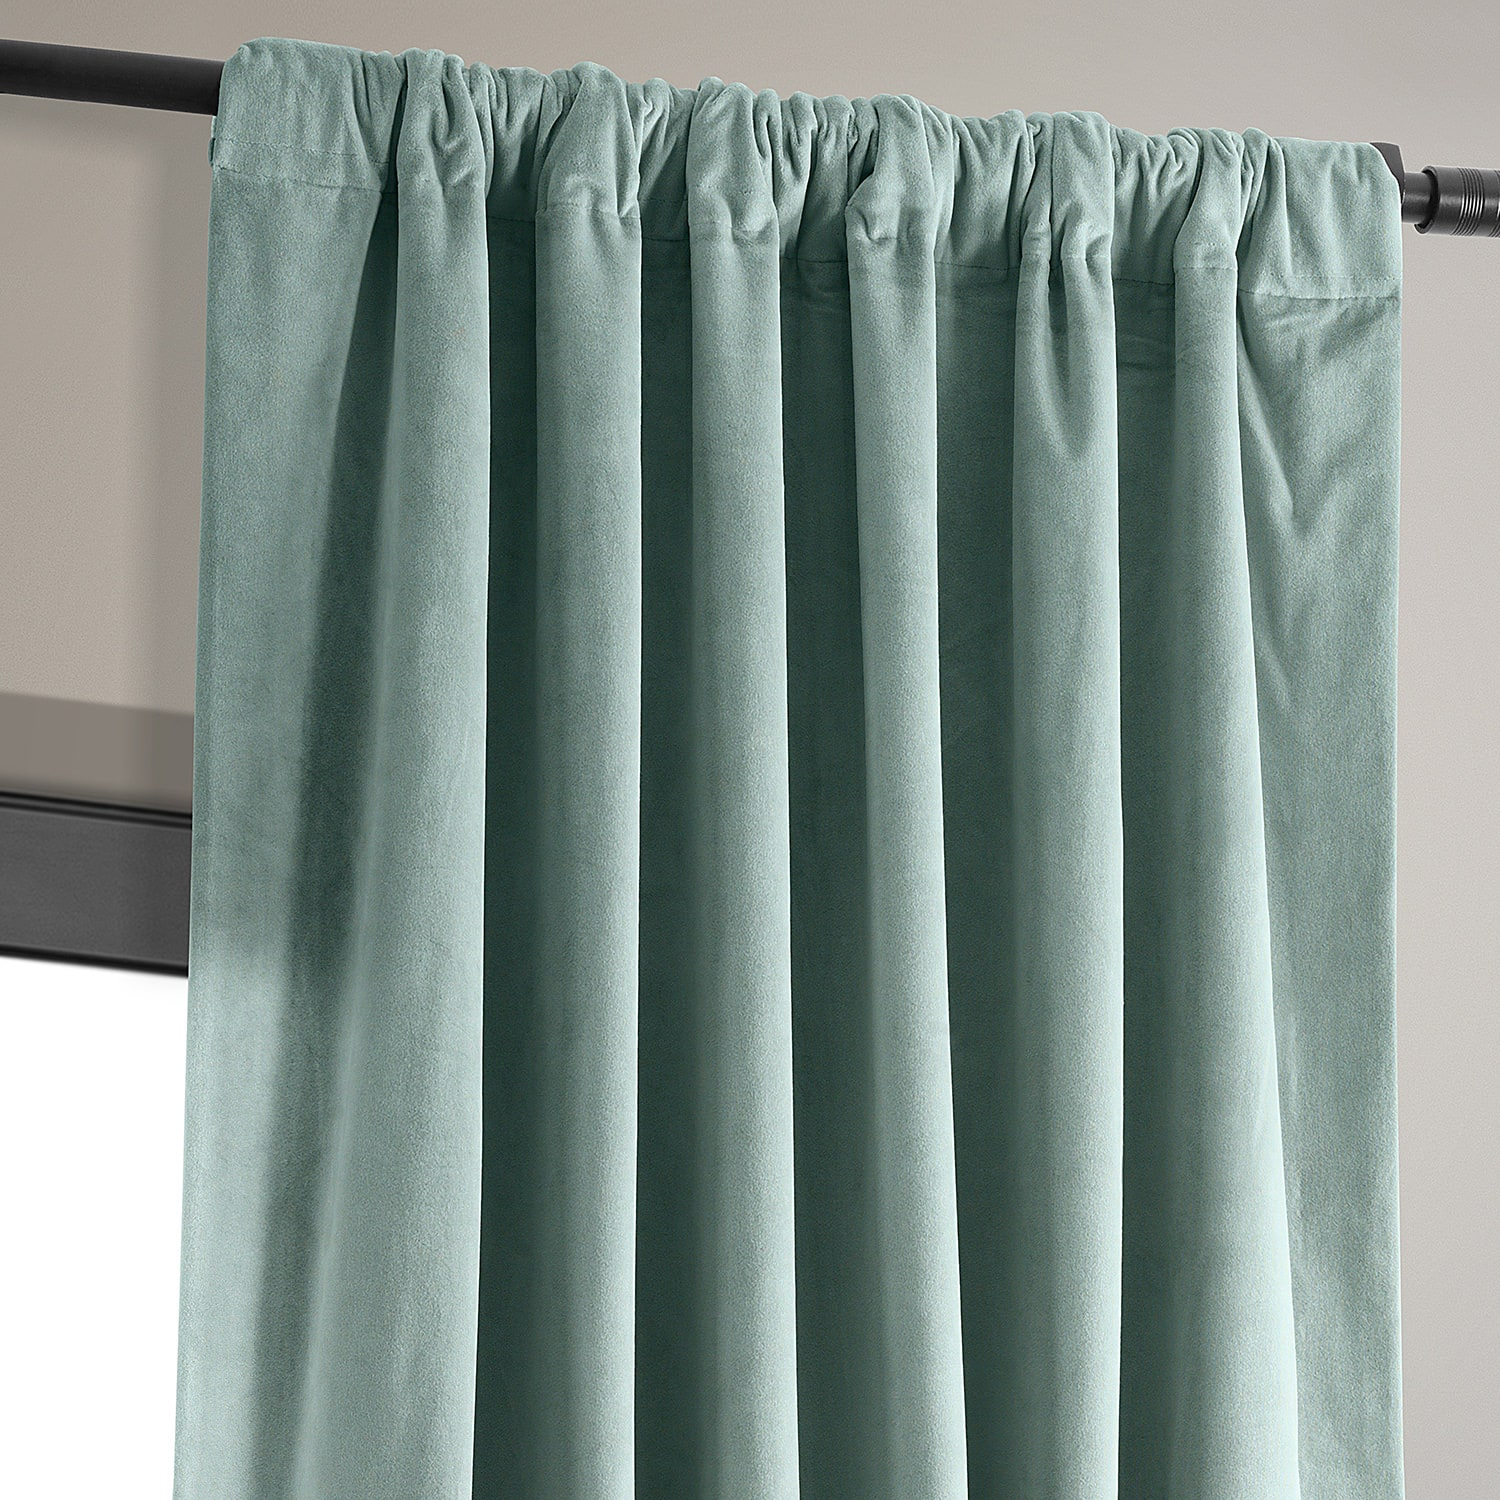 Signature Skylark Blue Blackout Velvet Curtain